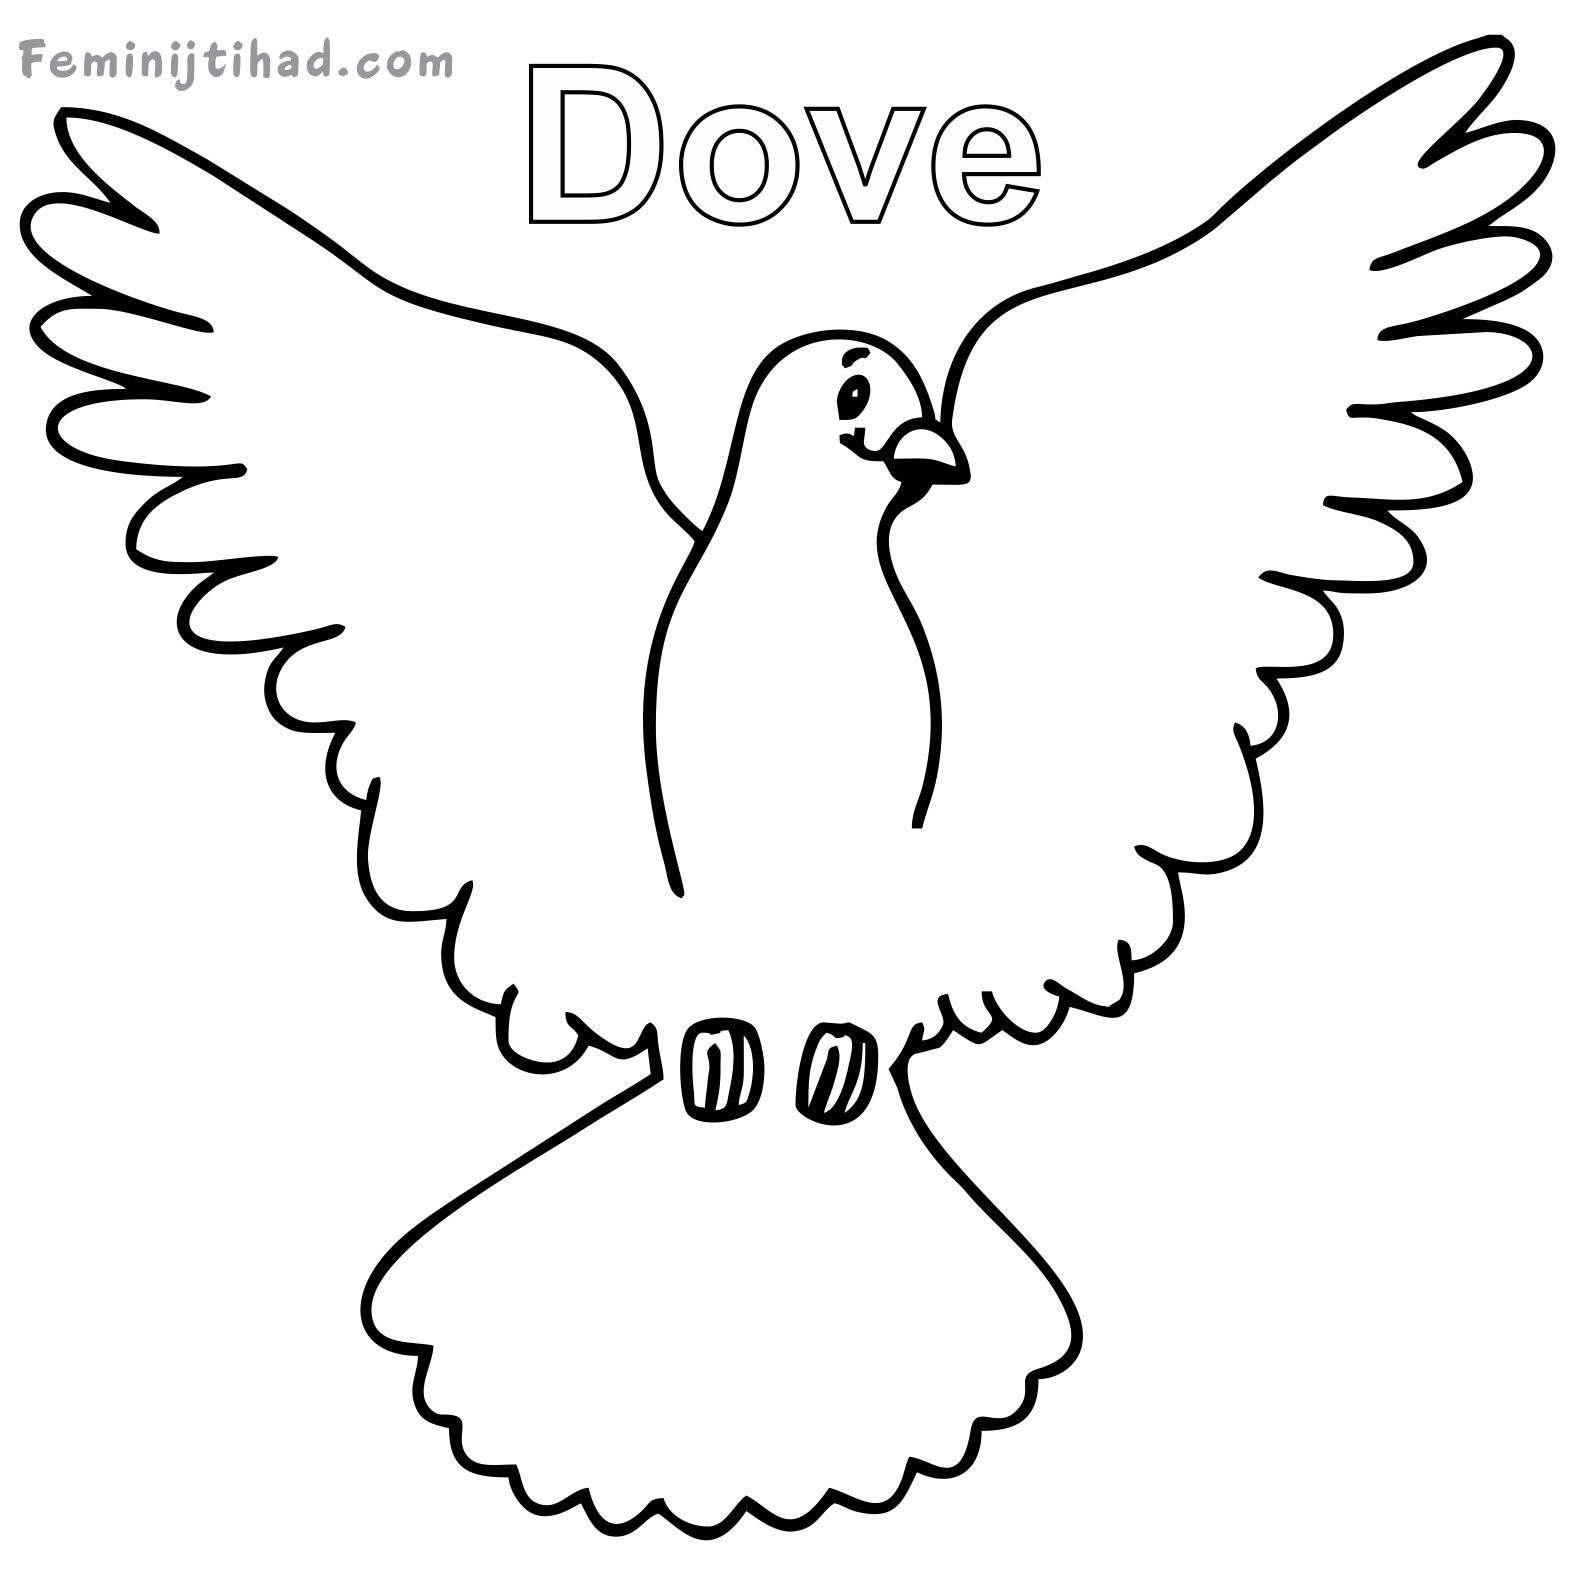 dove coloring pictures white dove coloring download white dove coloring for free dove coloring pictures